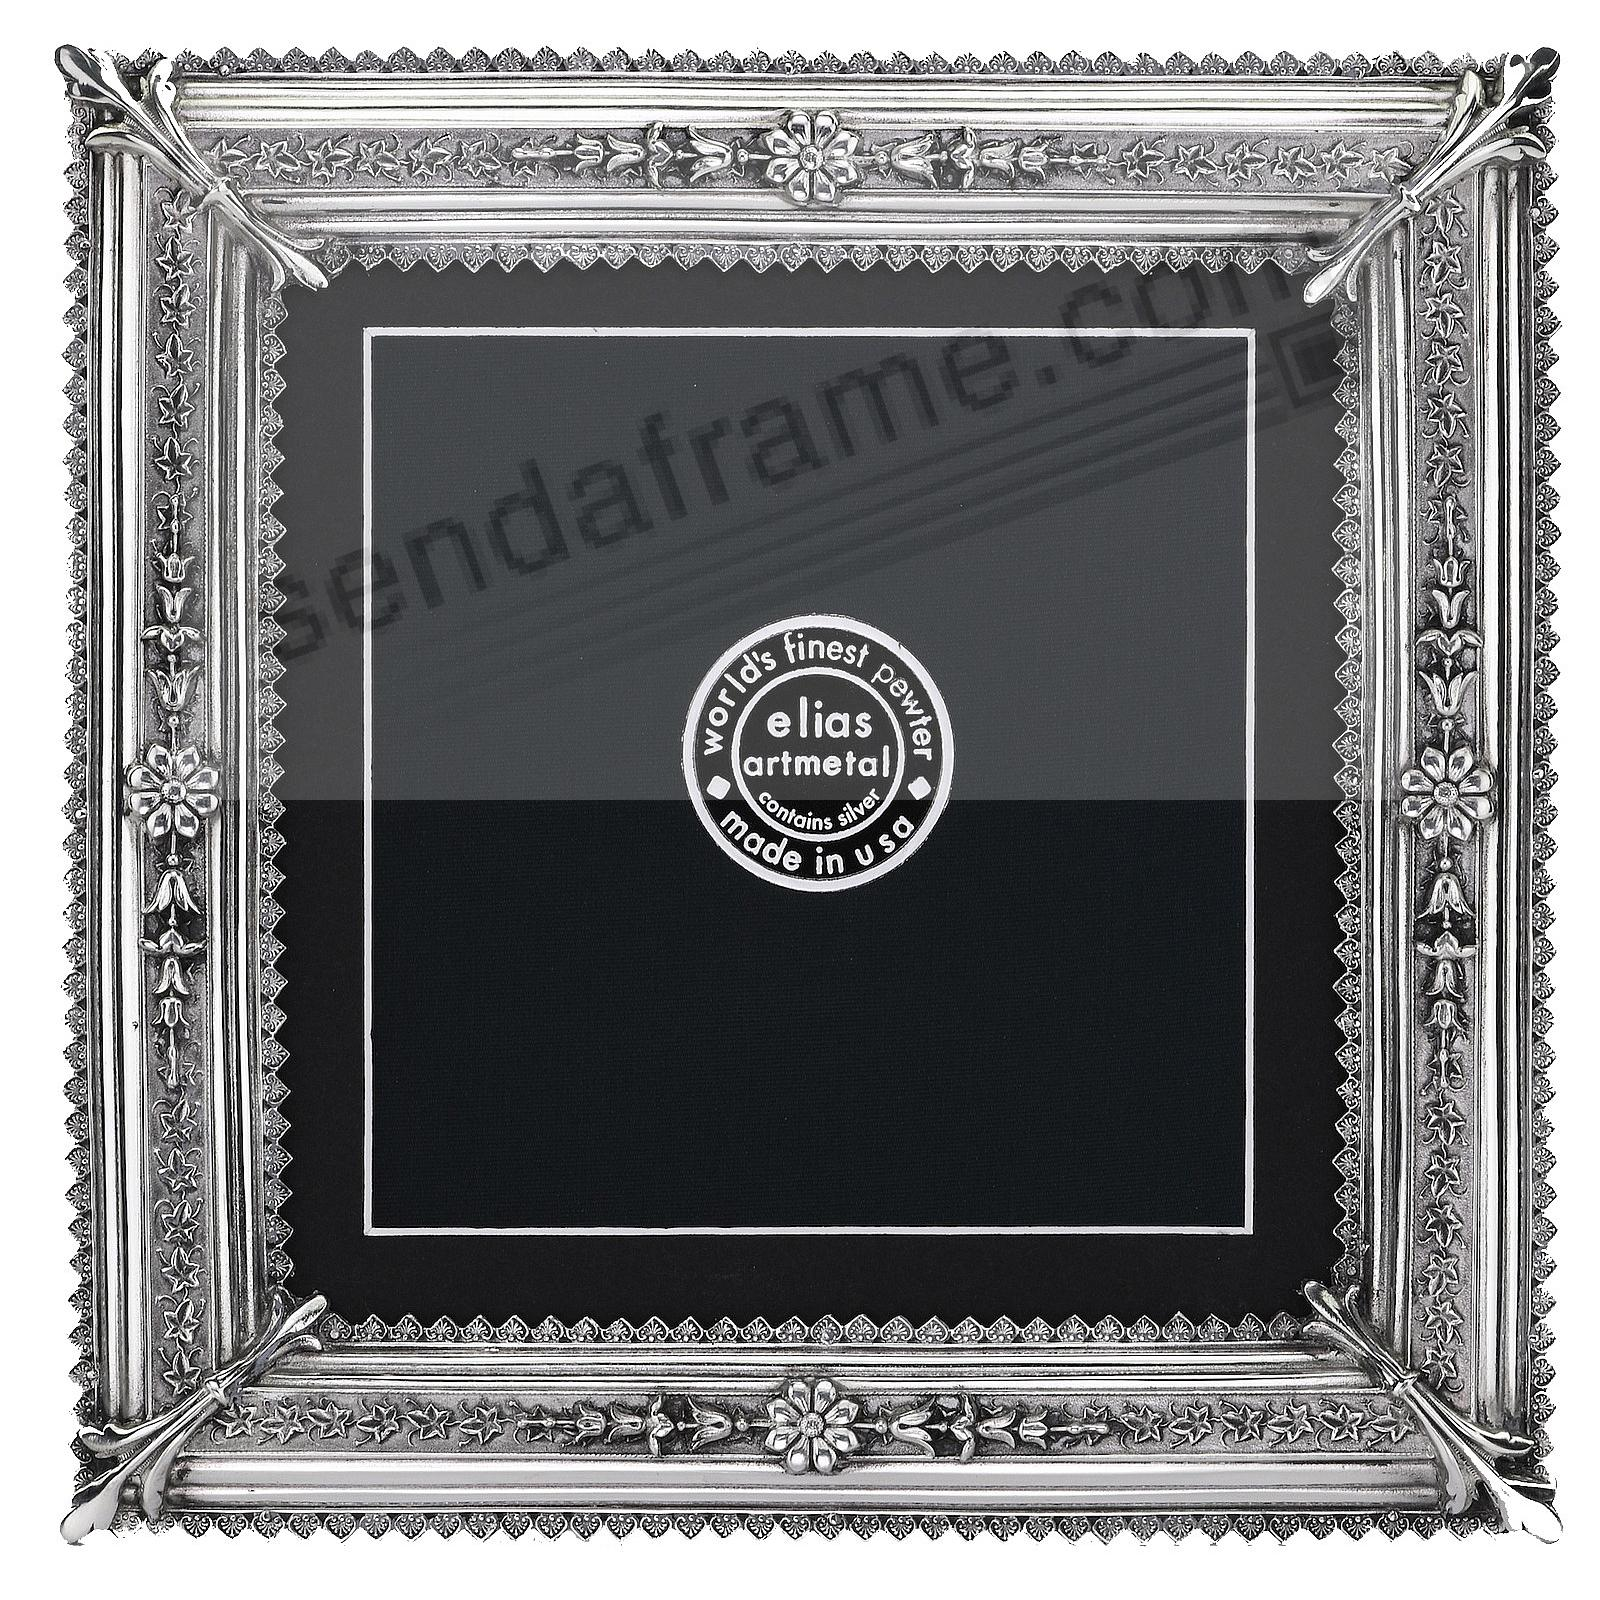 Proof-size Fine Pewter ROYALE 5x5/4x4 frame by Elias Artmetal®